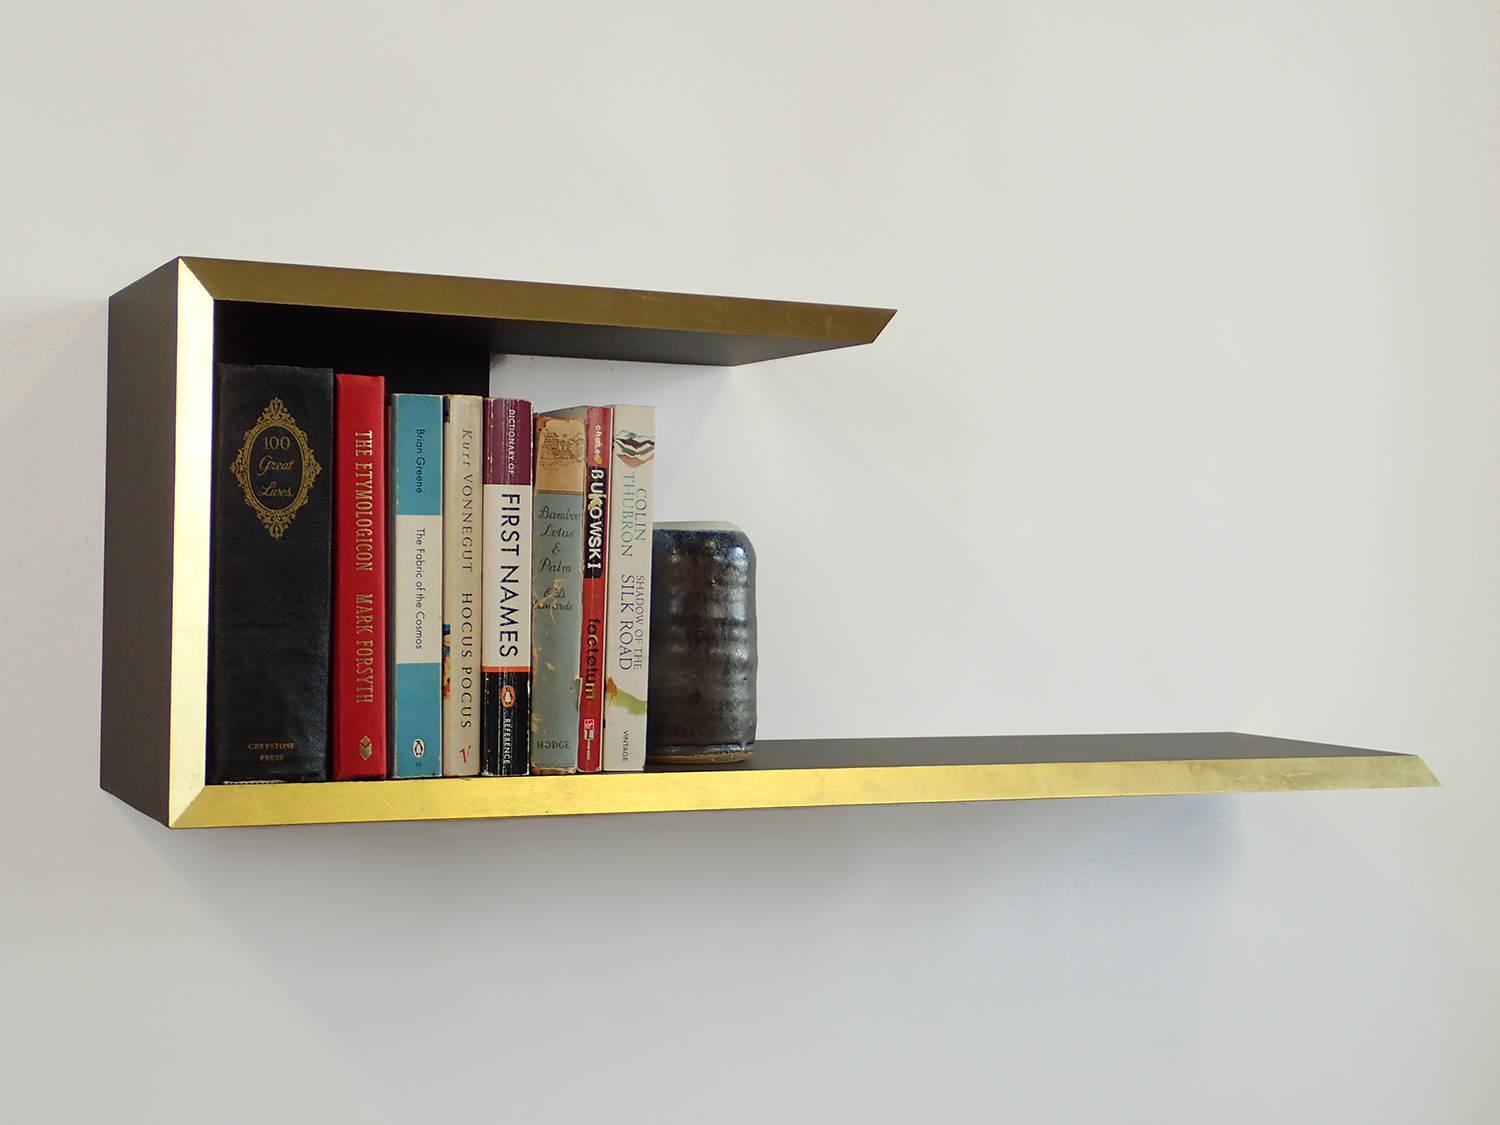 ikea hack shelf fabulous gold of a bookcase space week vittsjo blog saving diy the bookshelf